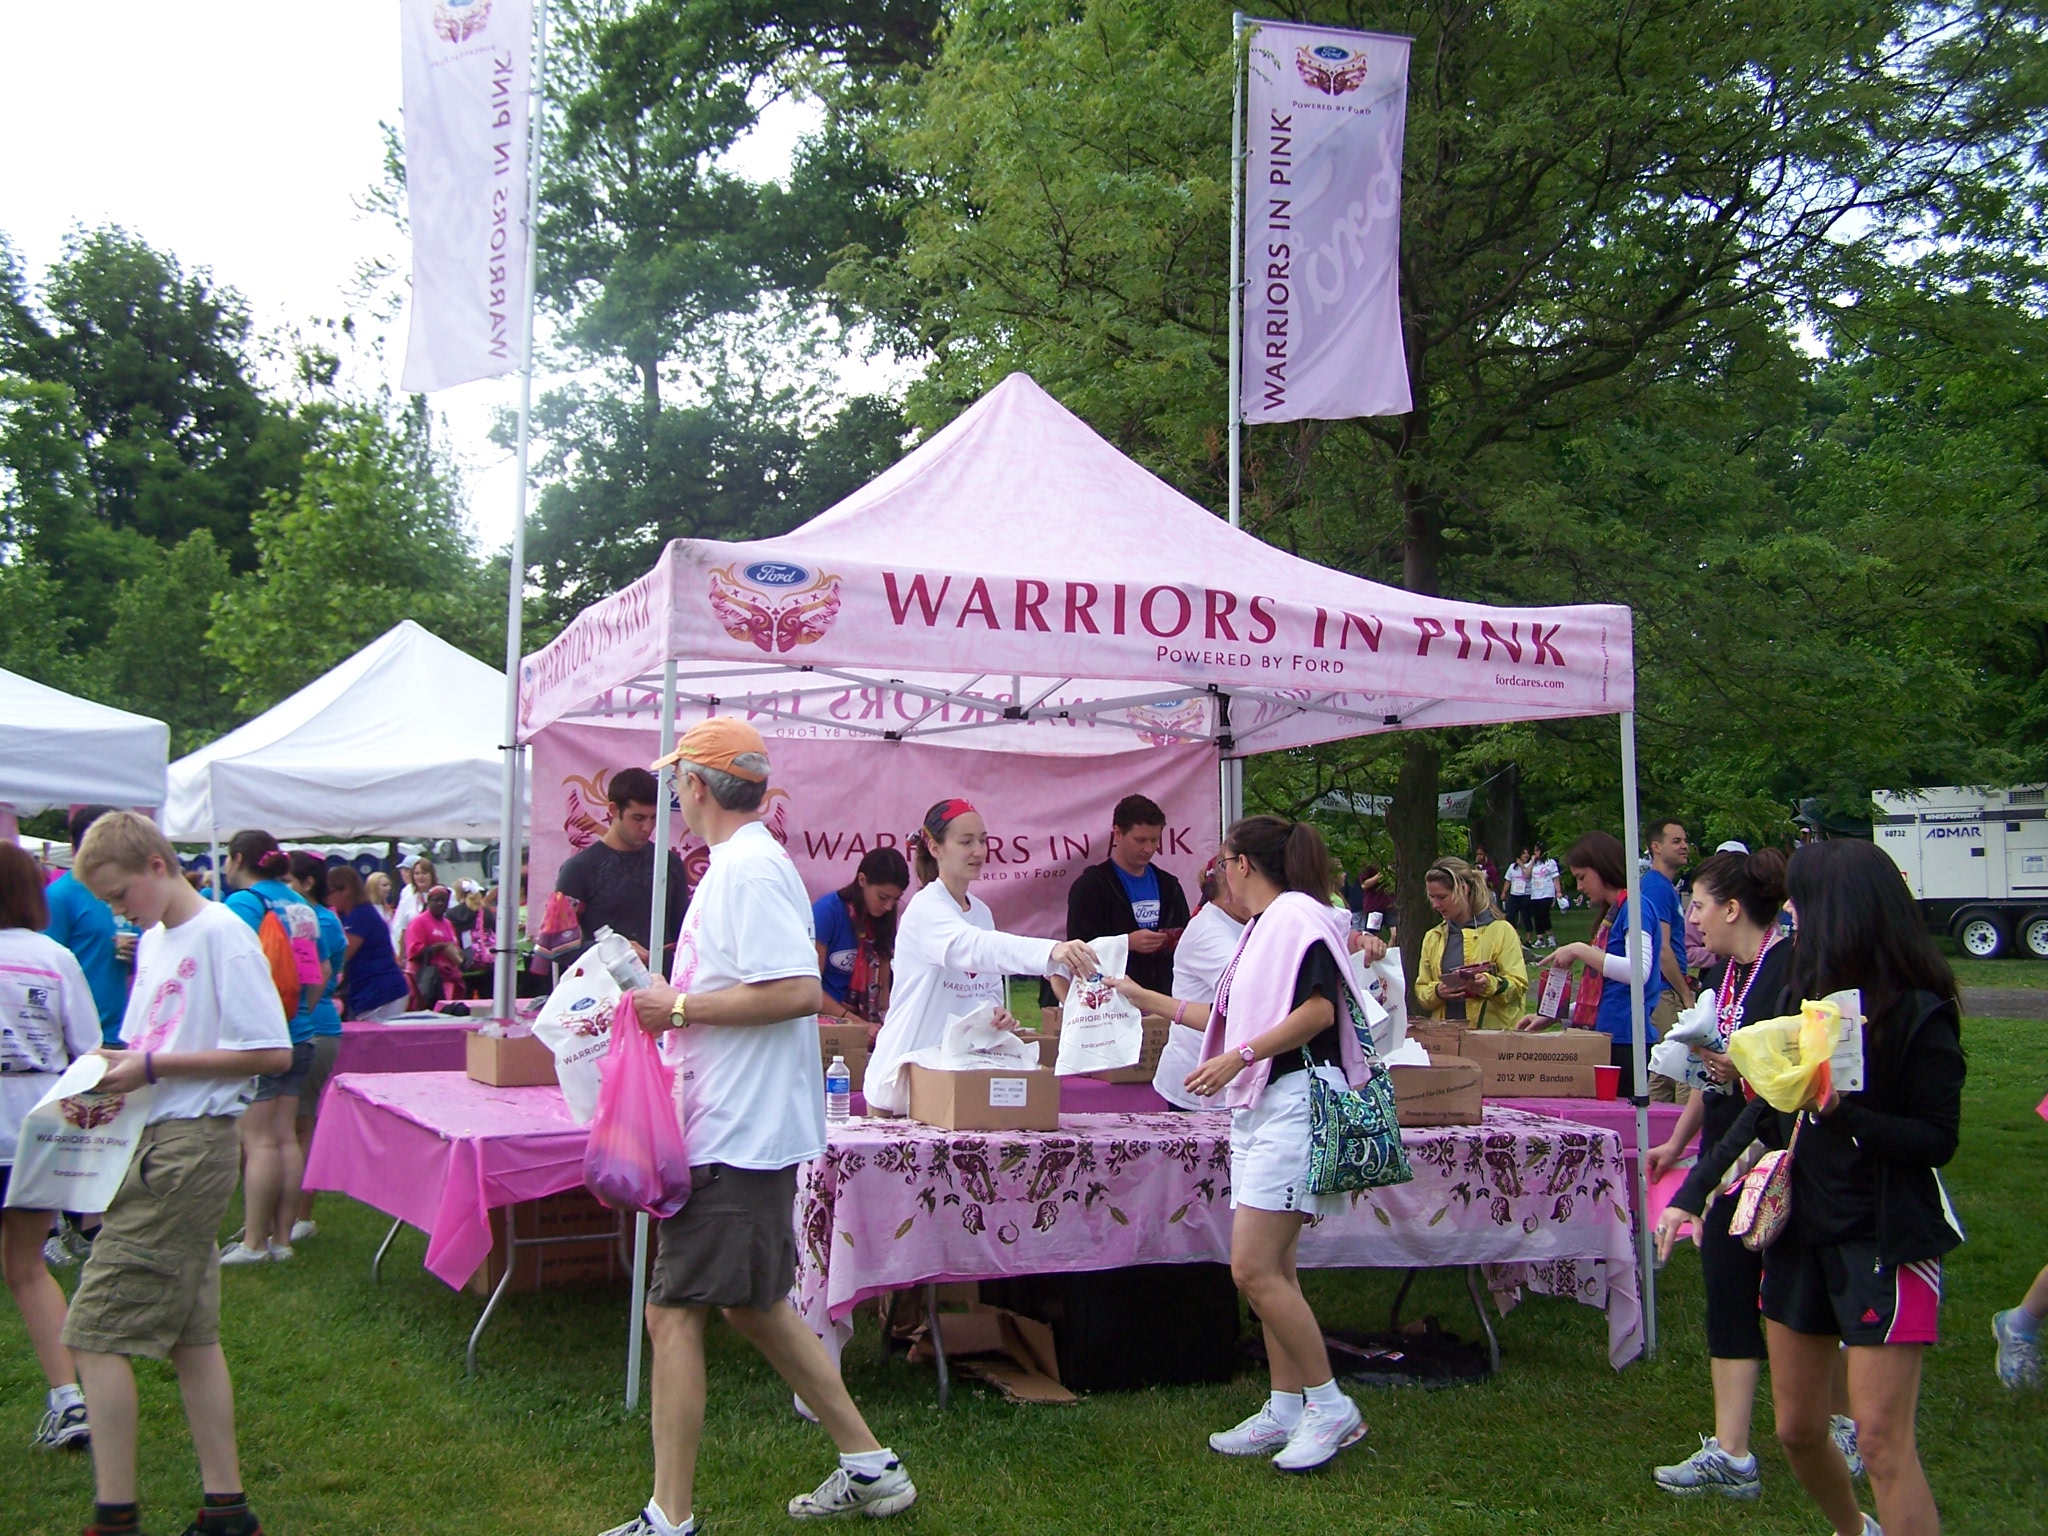 "Nationally, Ford provides ""Warriors in Pink"" scarves to participants at Susan G. Komen Race for the Cure events, including Western New York. Every year the scarves feature a unique design."